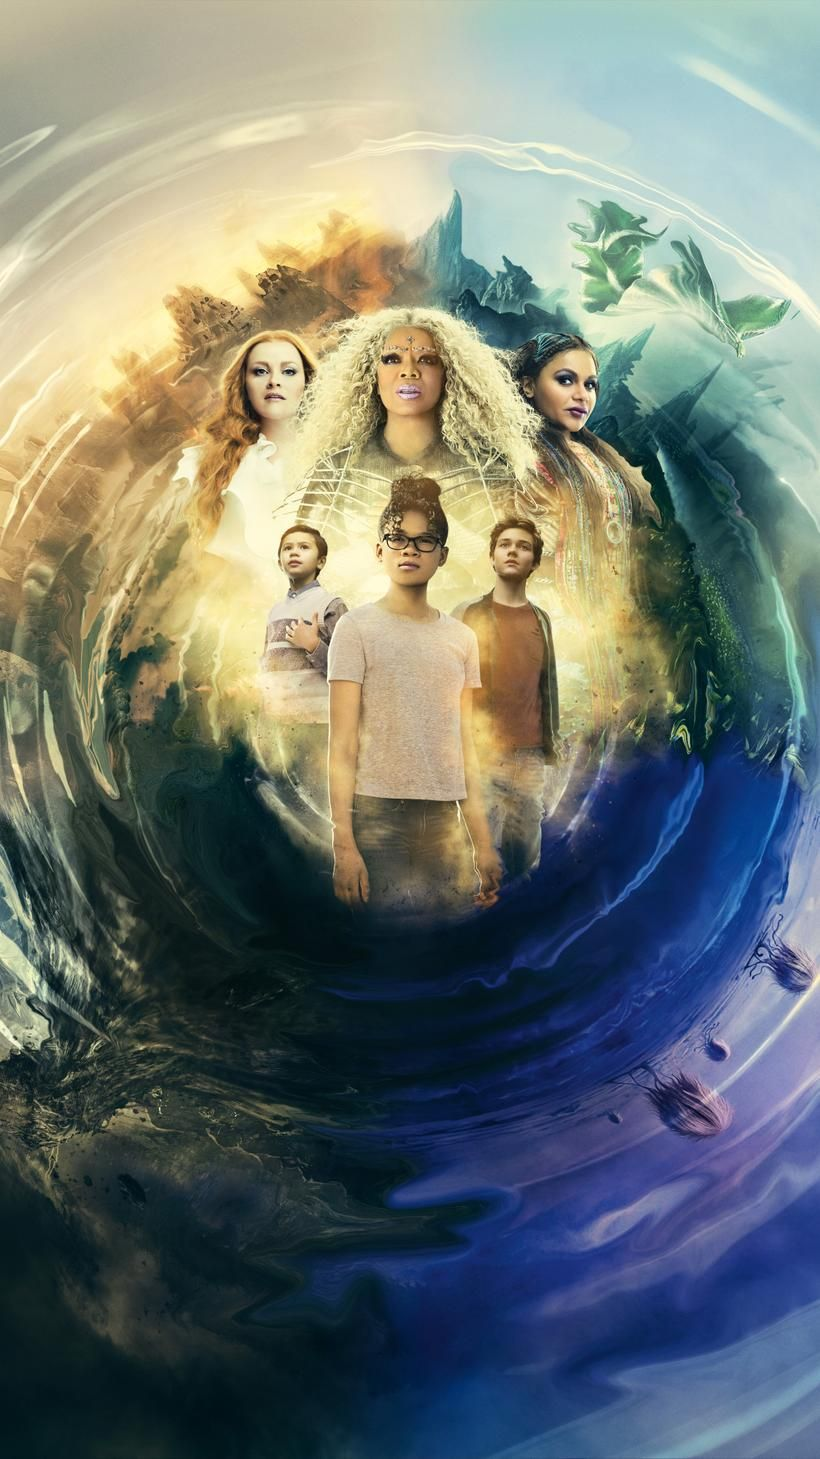 A Wrinkle In Time 2018 Phone Wallpaper Moviemania A Wrinkle In Time Disney Live Action Movies In And Out Movie